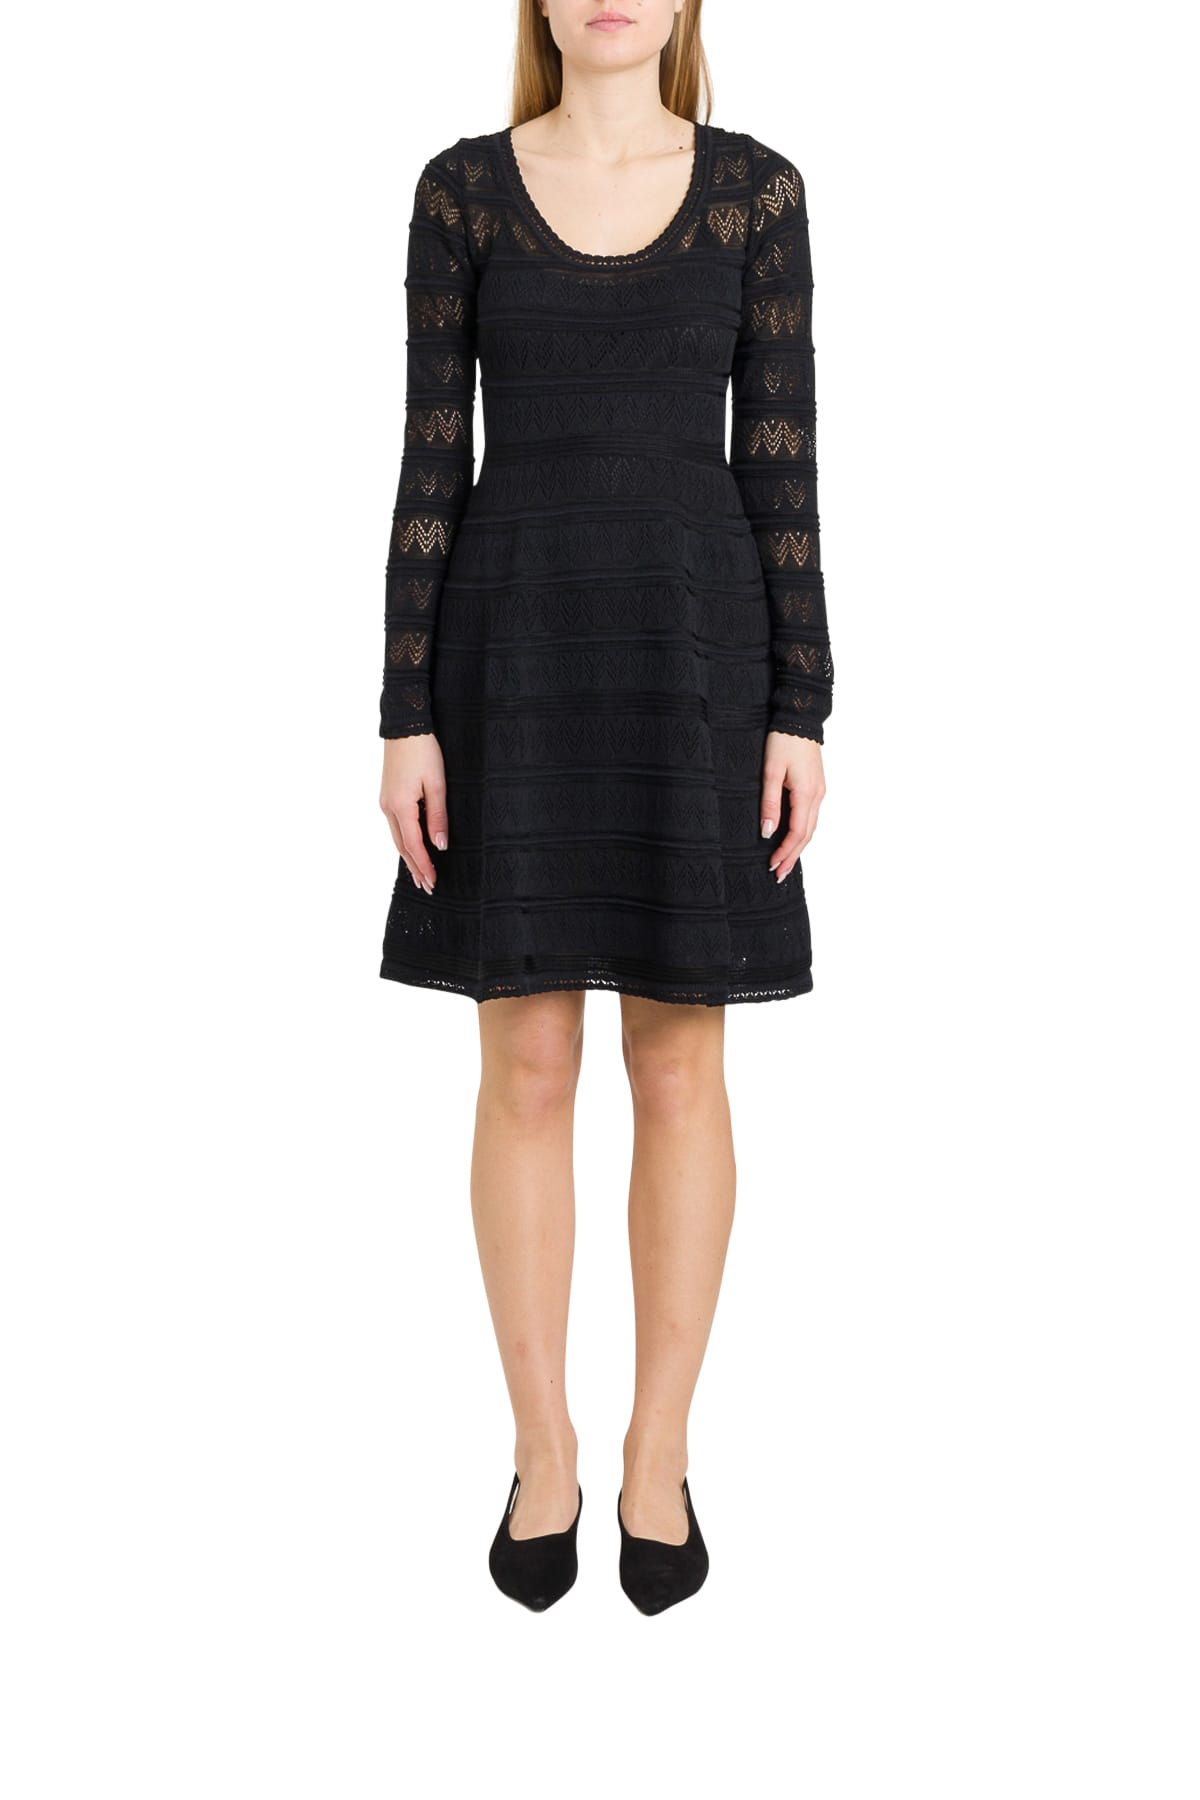 Buy M Missoni Openwork Knit Dress online, shop M Missoni with free shipping